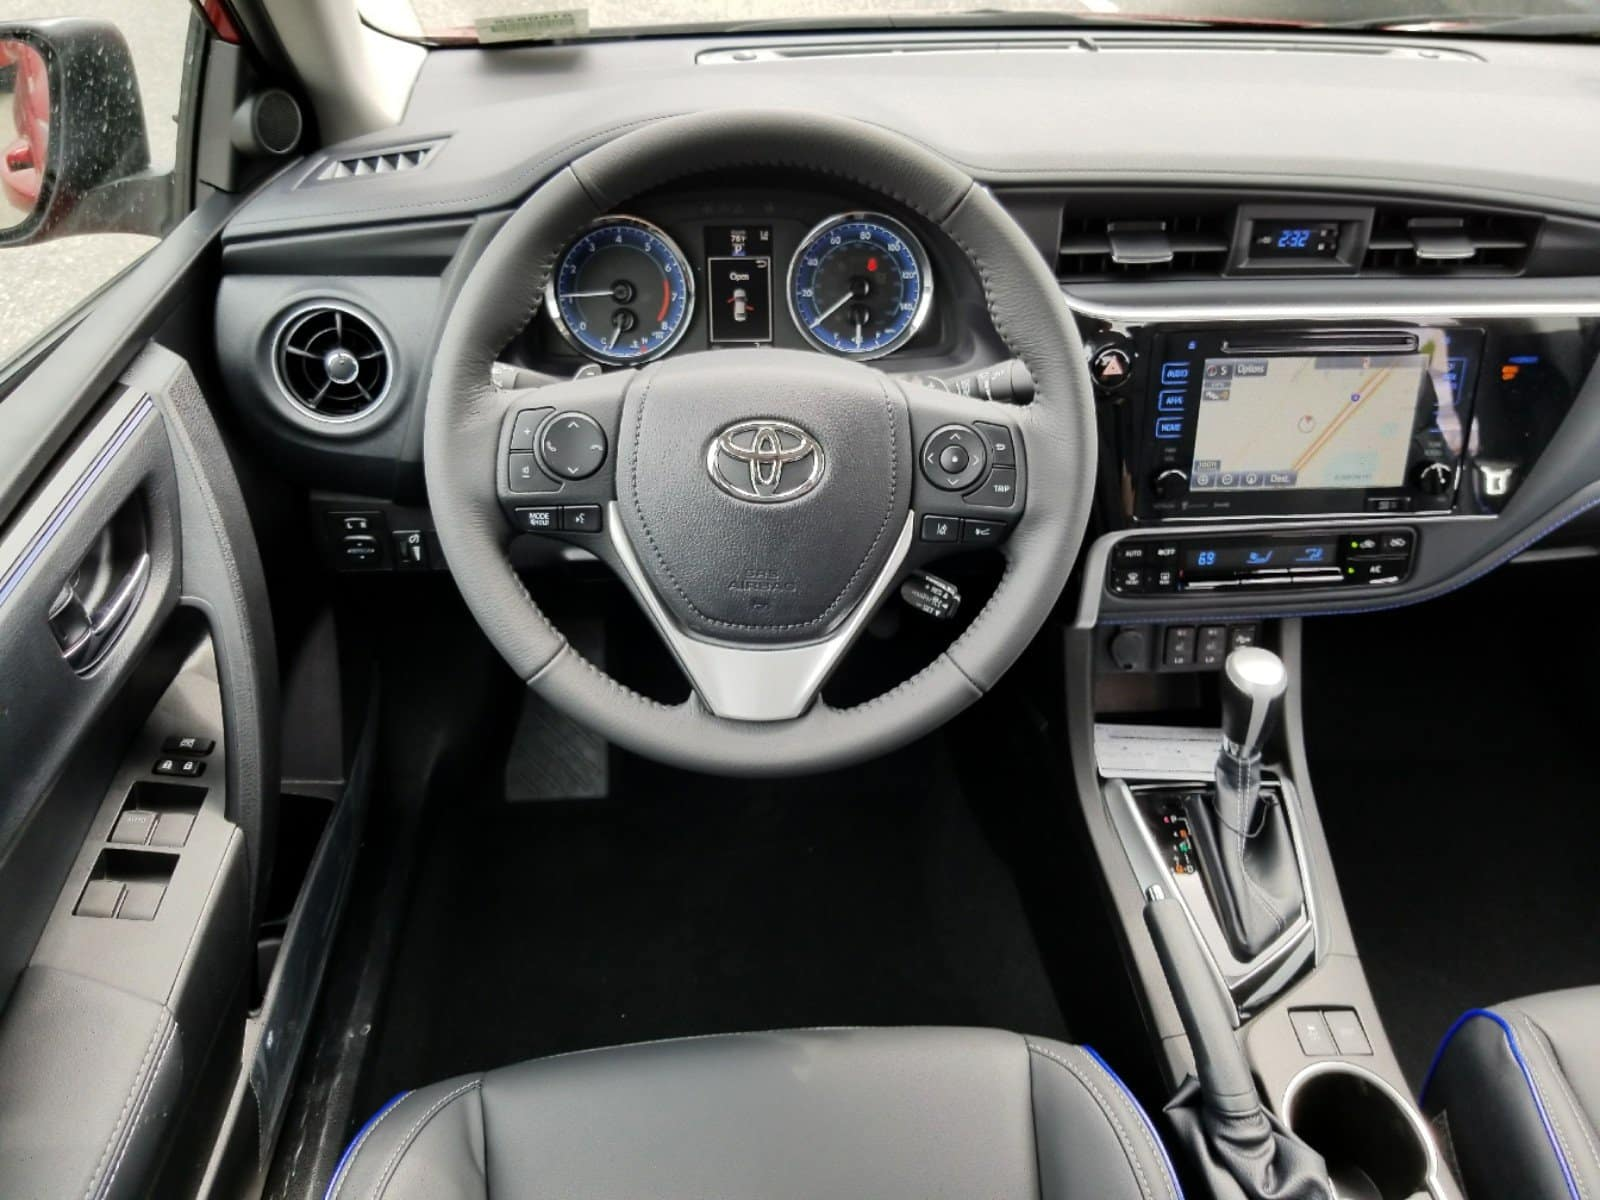 The new 2019 Toyota Corolla is here at Toyota of Orlando.